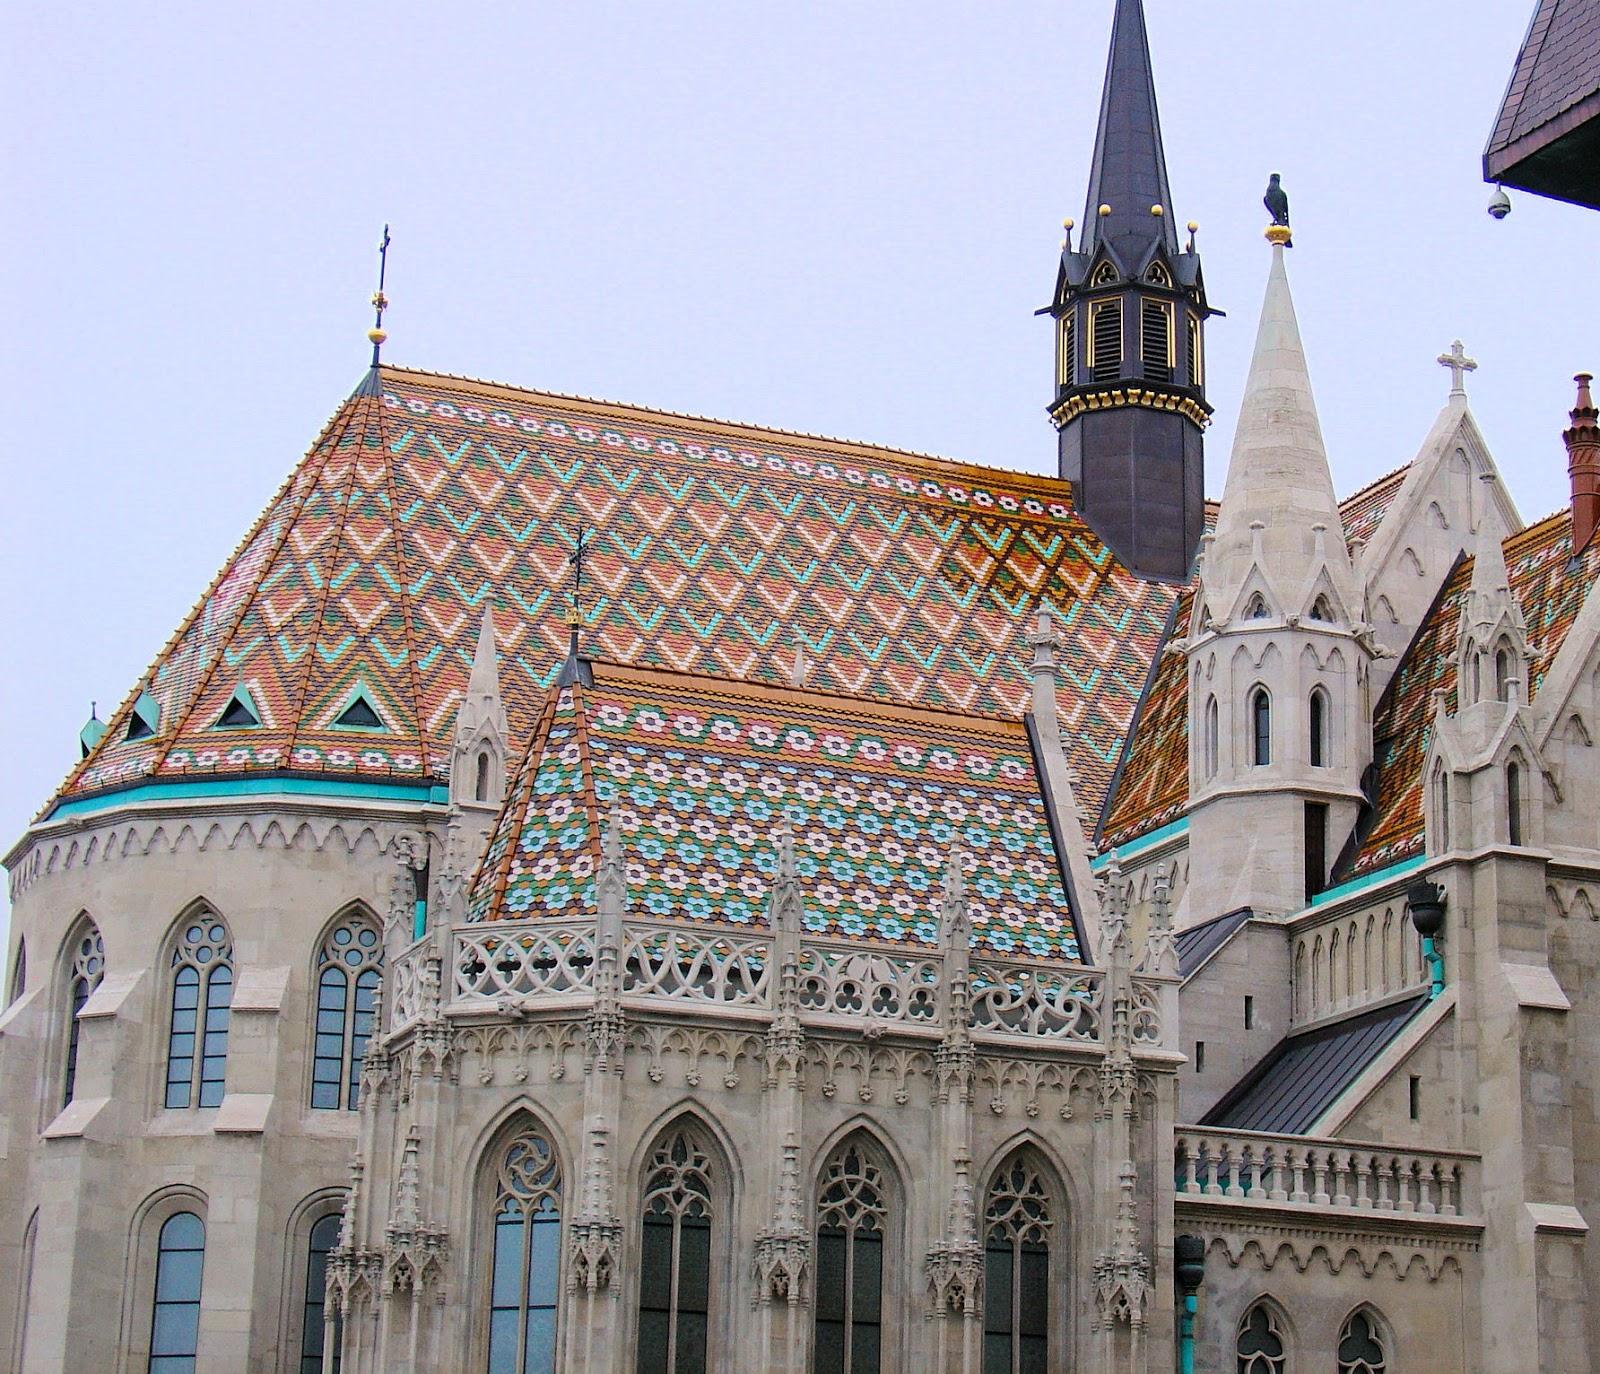 Exquisite diamond patterns adorn the roof of Saint Matthias in Budapest, Hungary.